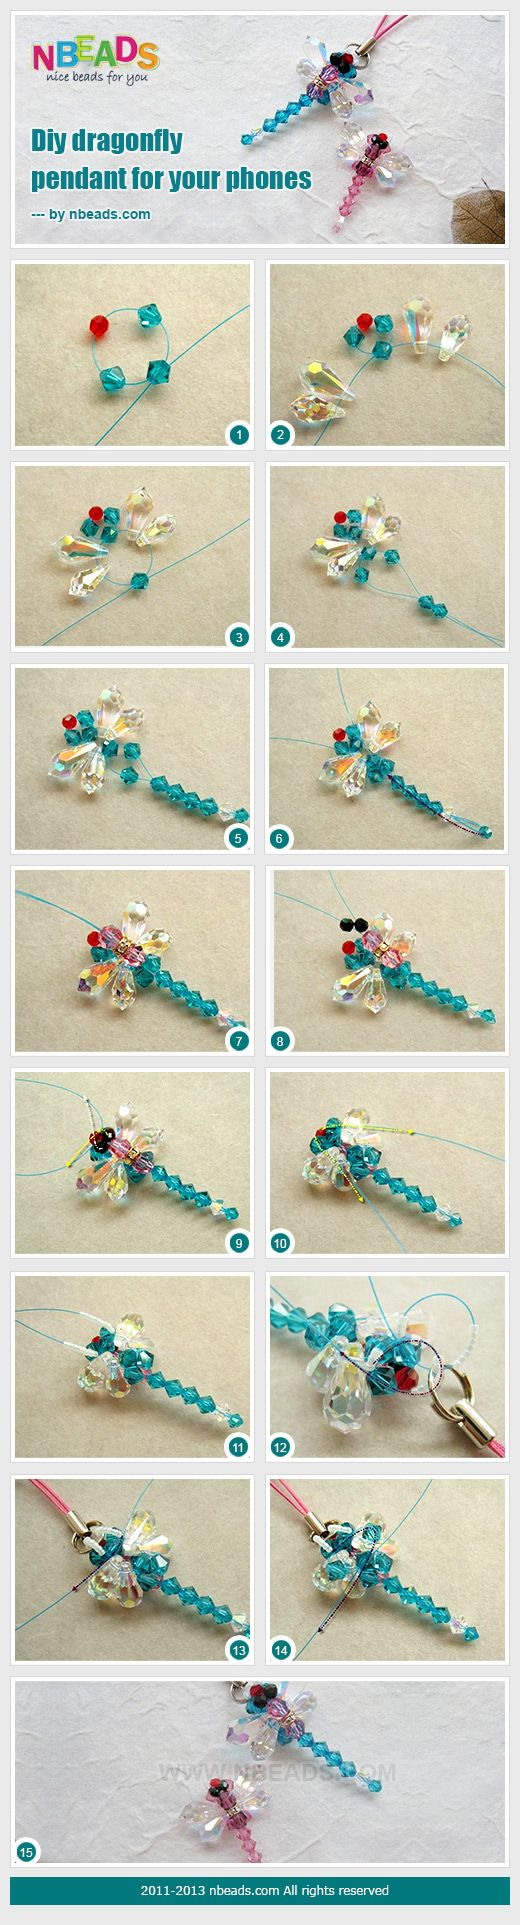 Summary: Using normal glass in different shapes for this dragonfly pendant creates a stunning beaded dragonfly. Shapes of round, bicone and drop beads are all chosen to make a colorful dragonfly. A cord loop with end is added to make it as a key or phone